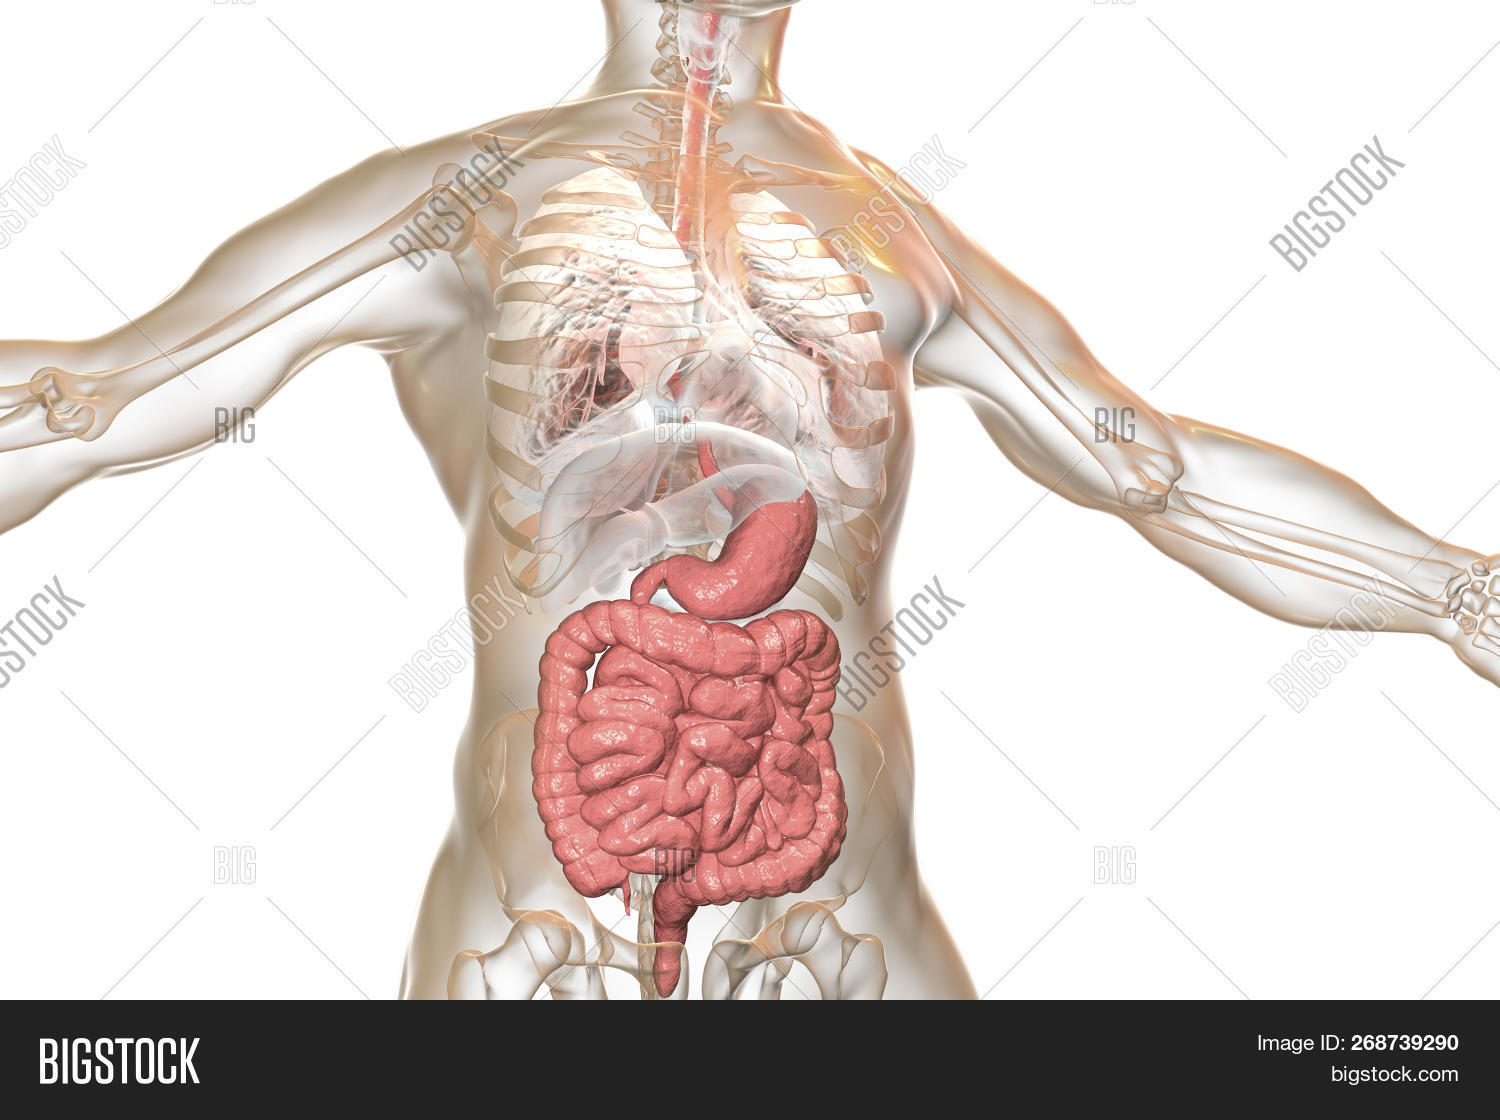 hight resolution of human body anatomy with highlighted digestive system 3d illustration